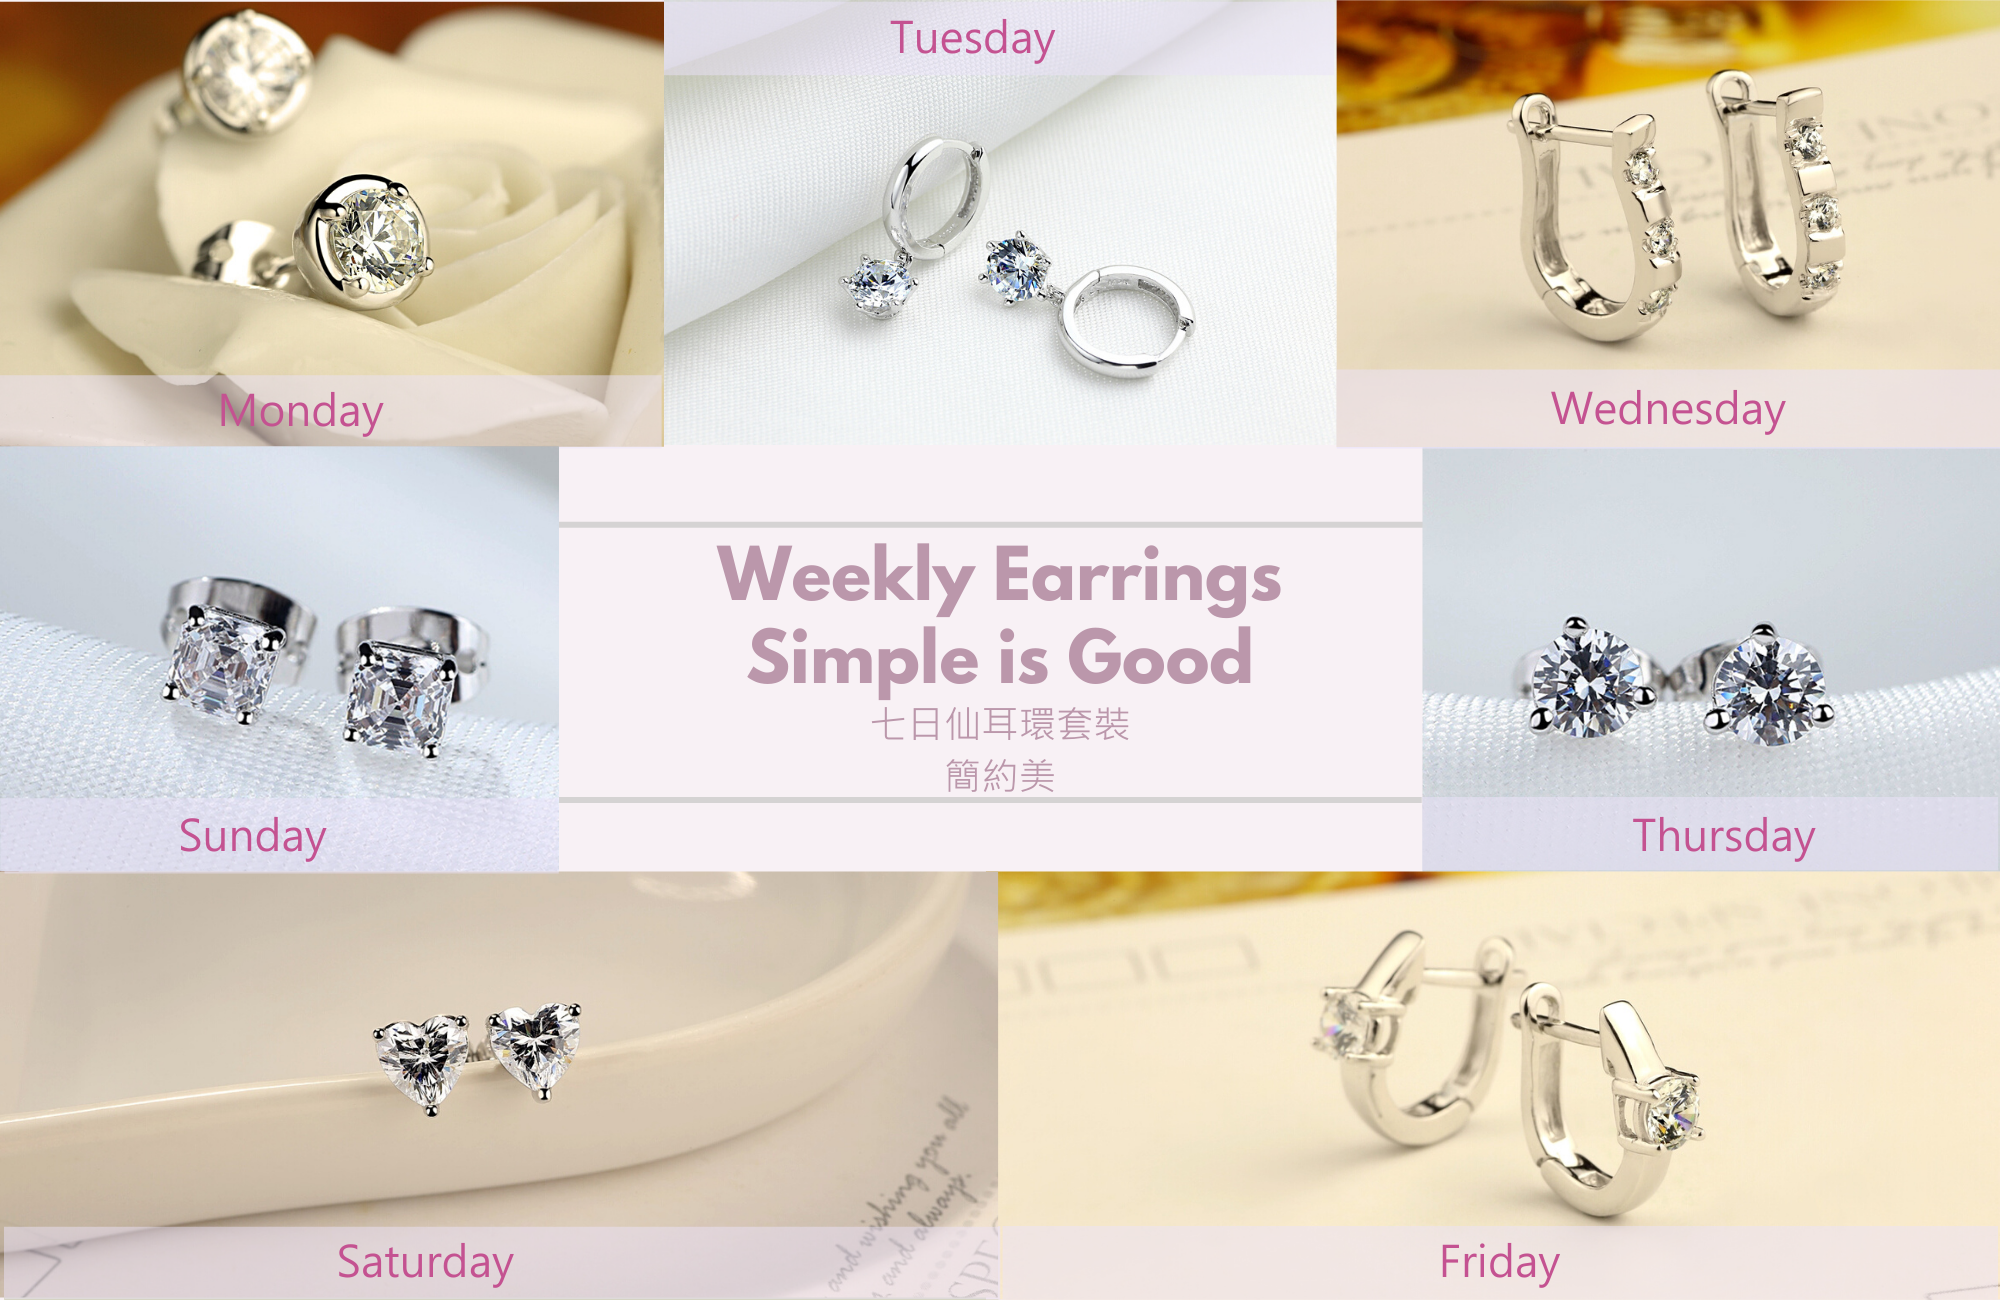 Simple is Good Weekly Earrings Seven Earrings Set with Cubic Zirconia Plated with White Gold